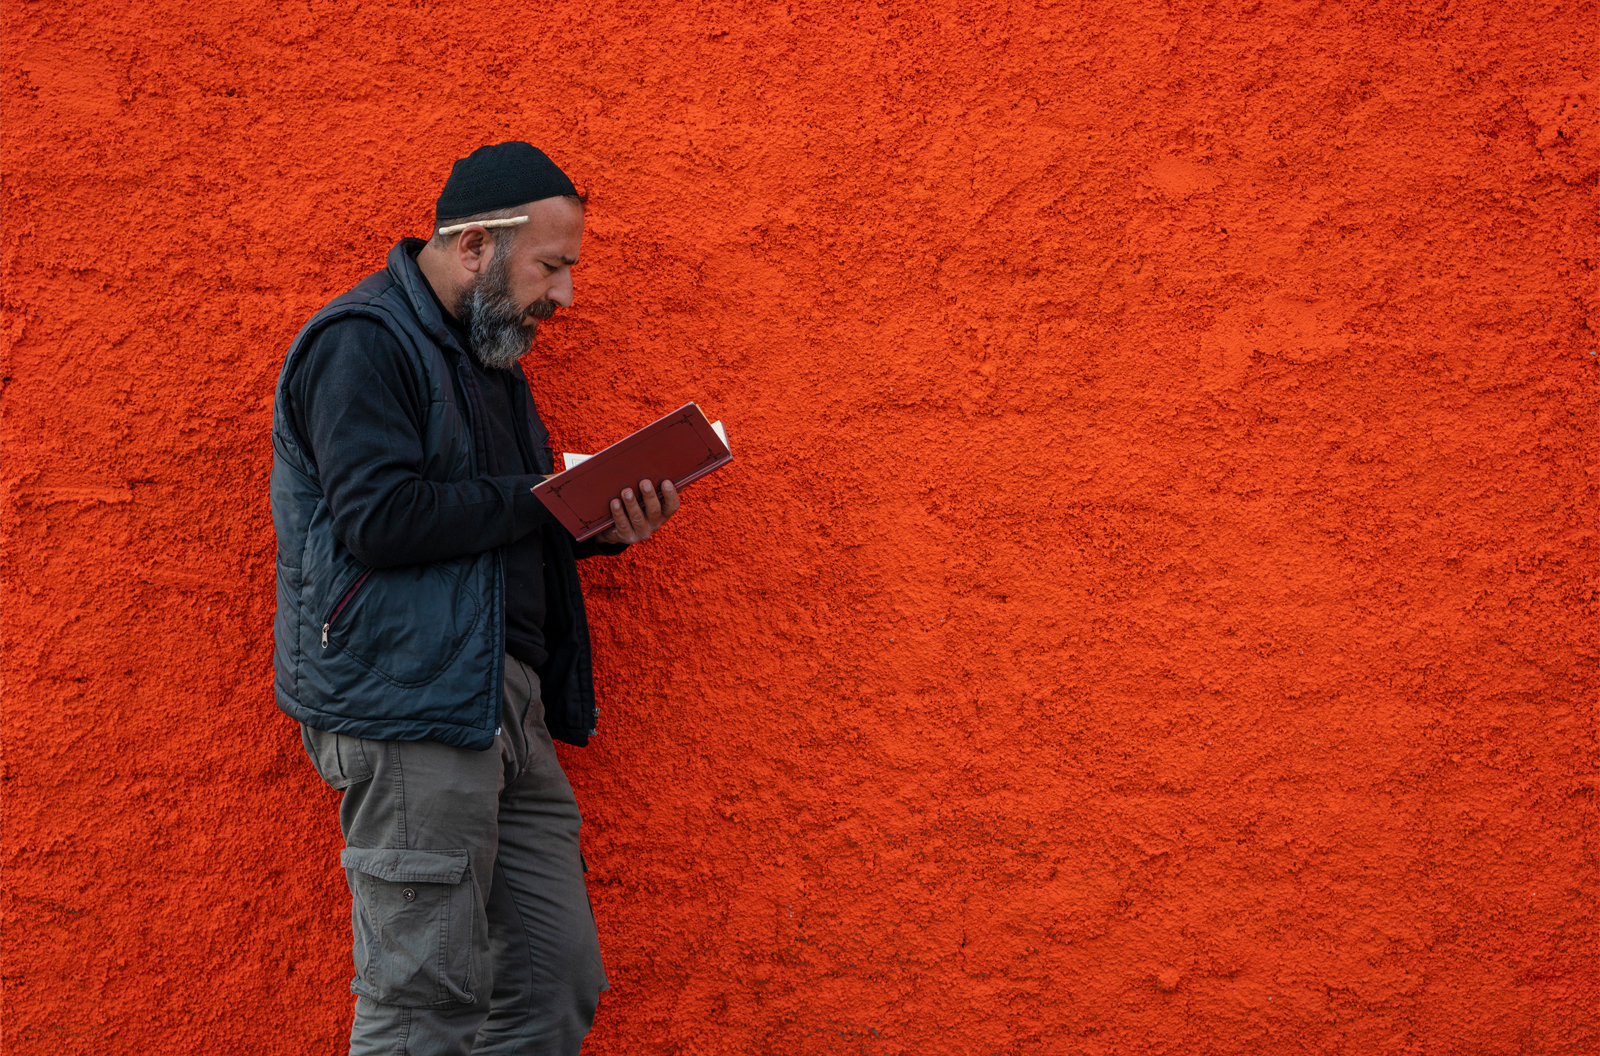 Bearded man reading a book while leaning up against a textured orange wall